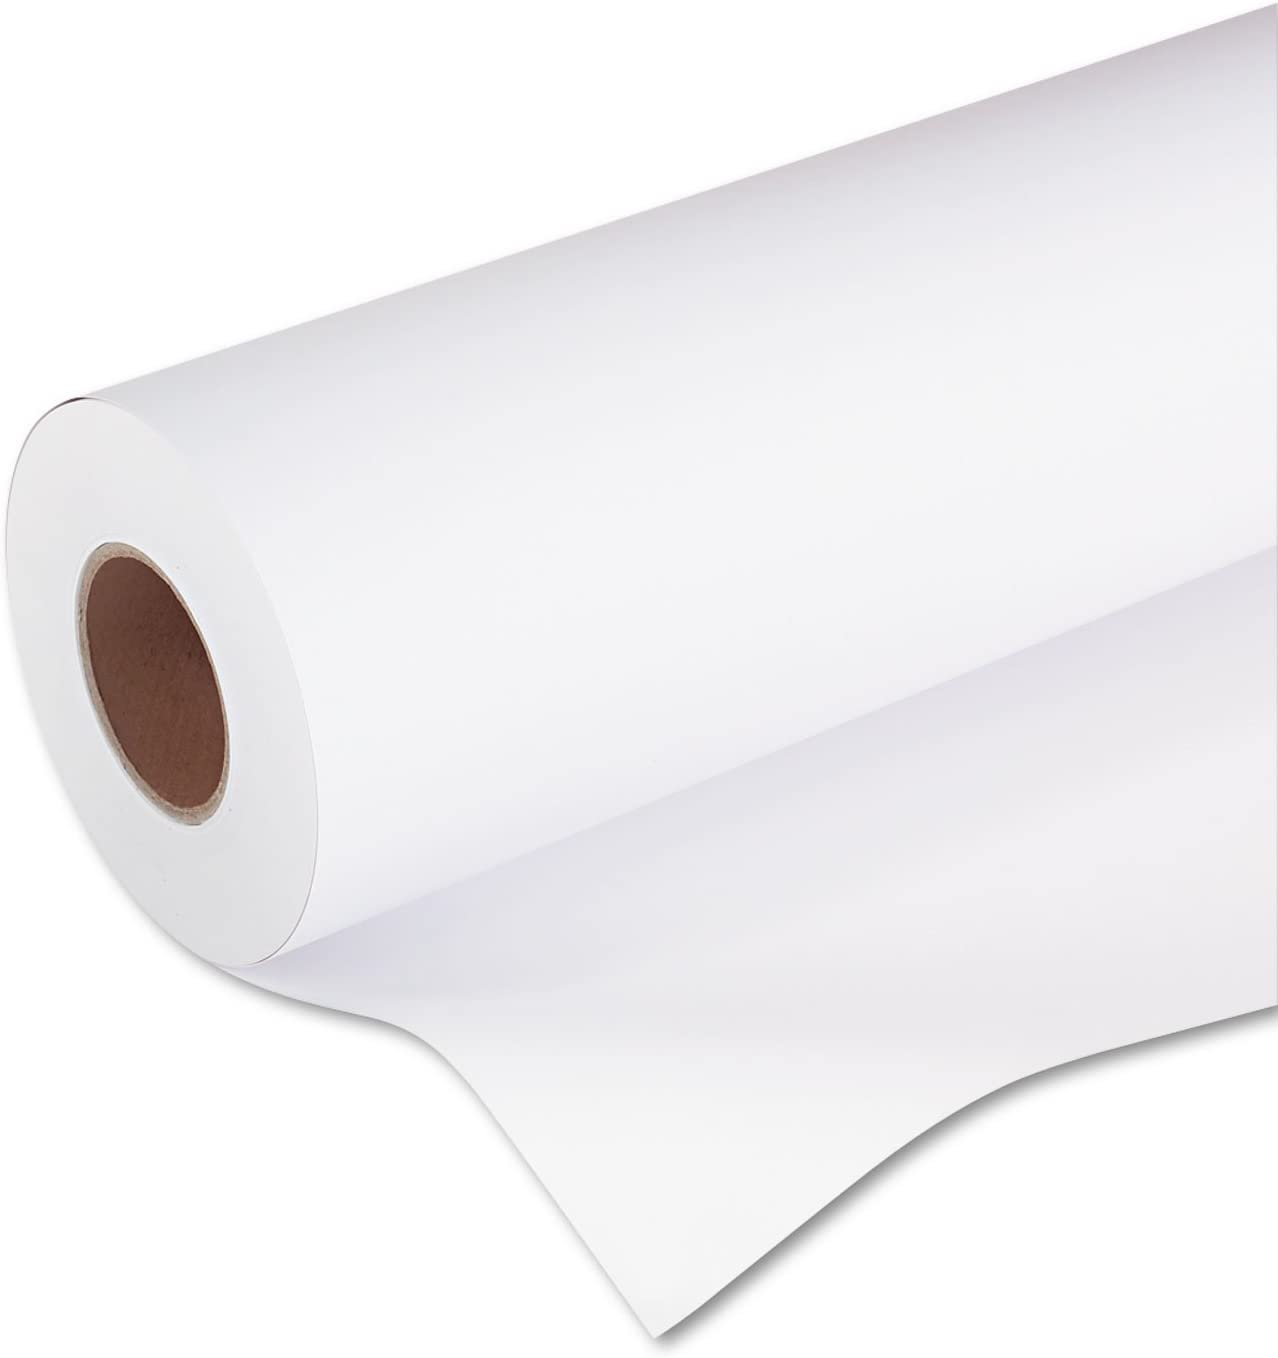 HP C6567B Coated Paper,Heavyweight,26 lb, 42-Inch x150-Ft,92 GE/101 ISO,White